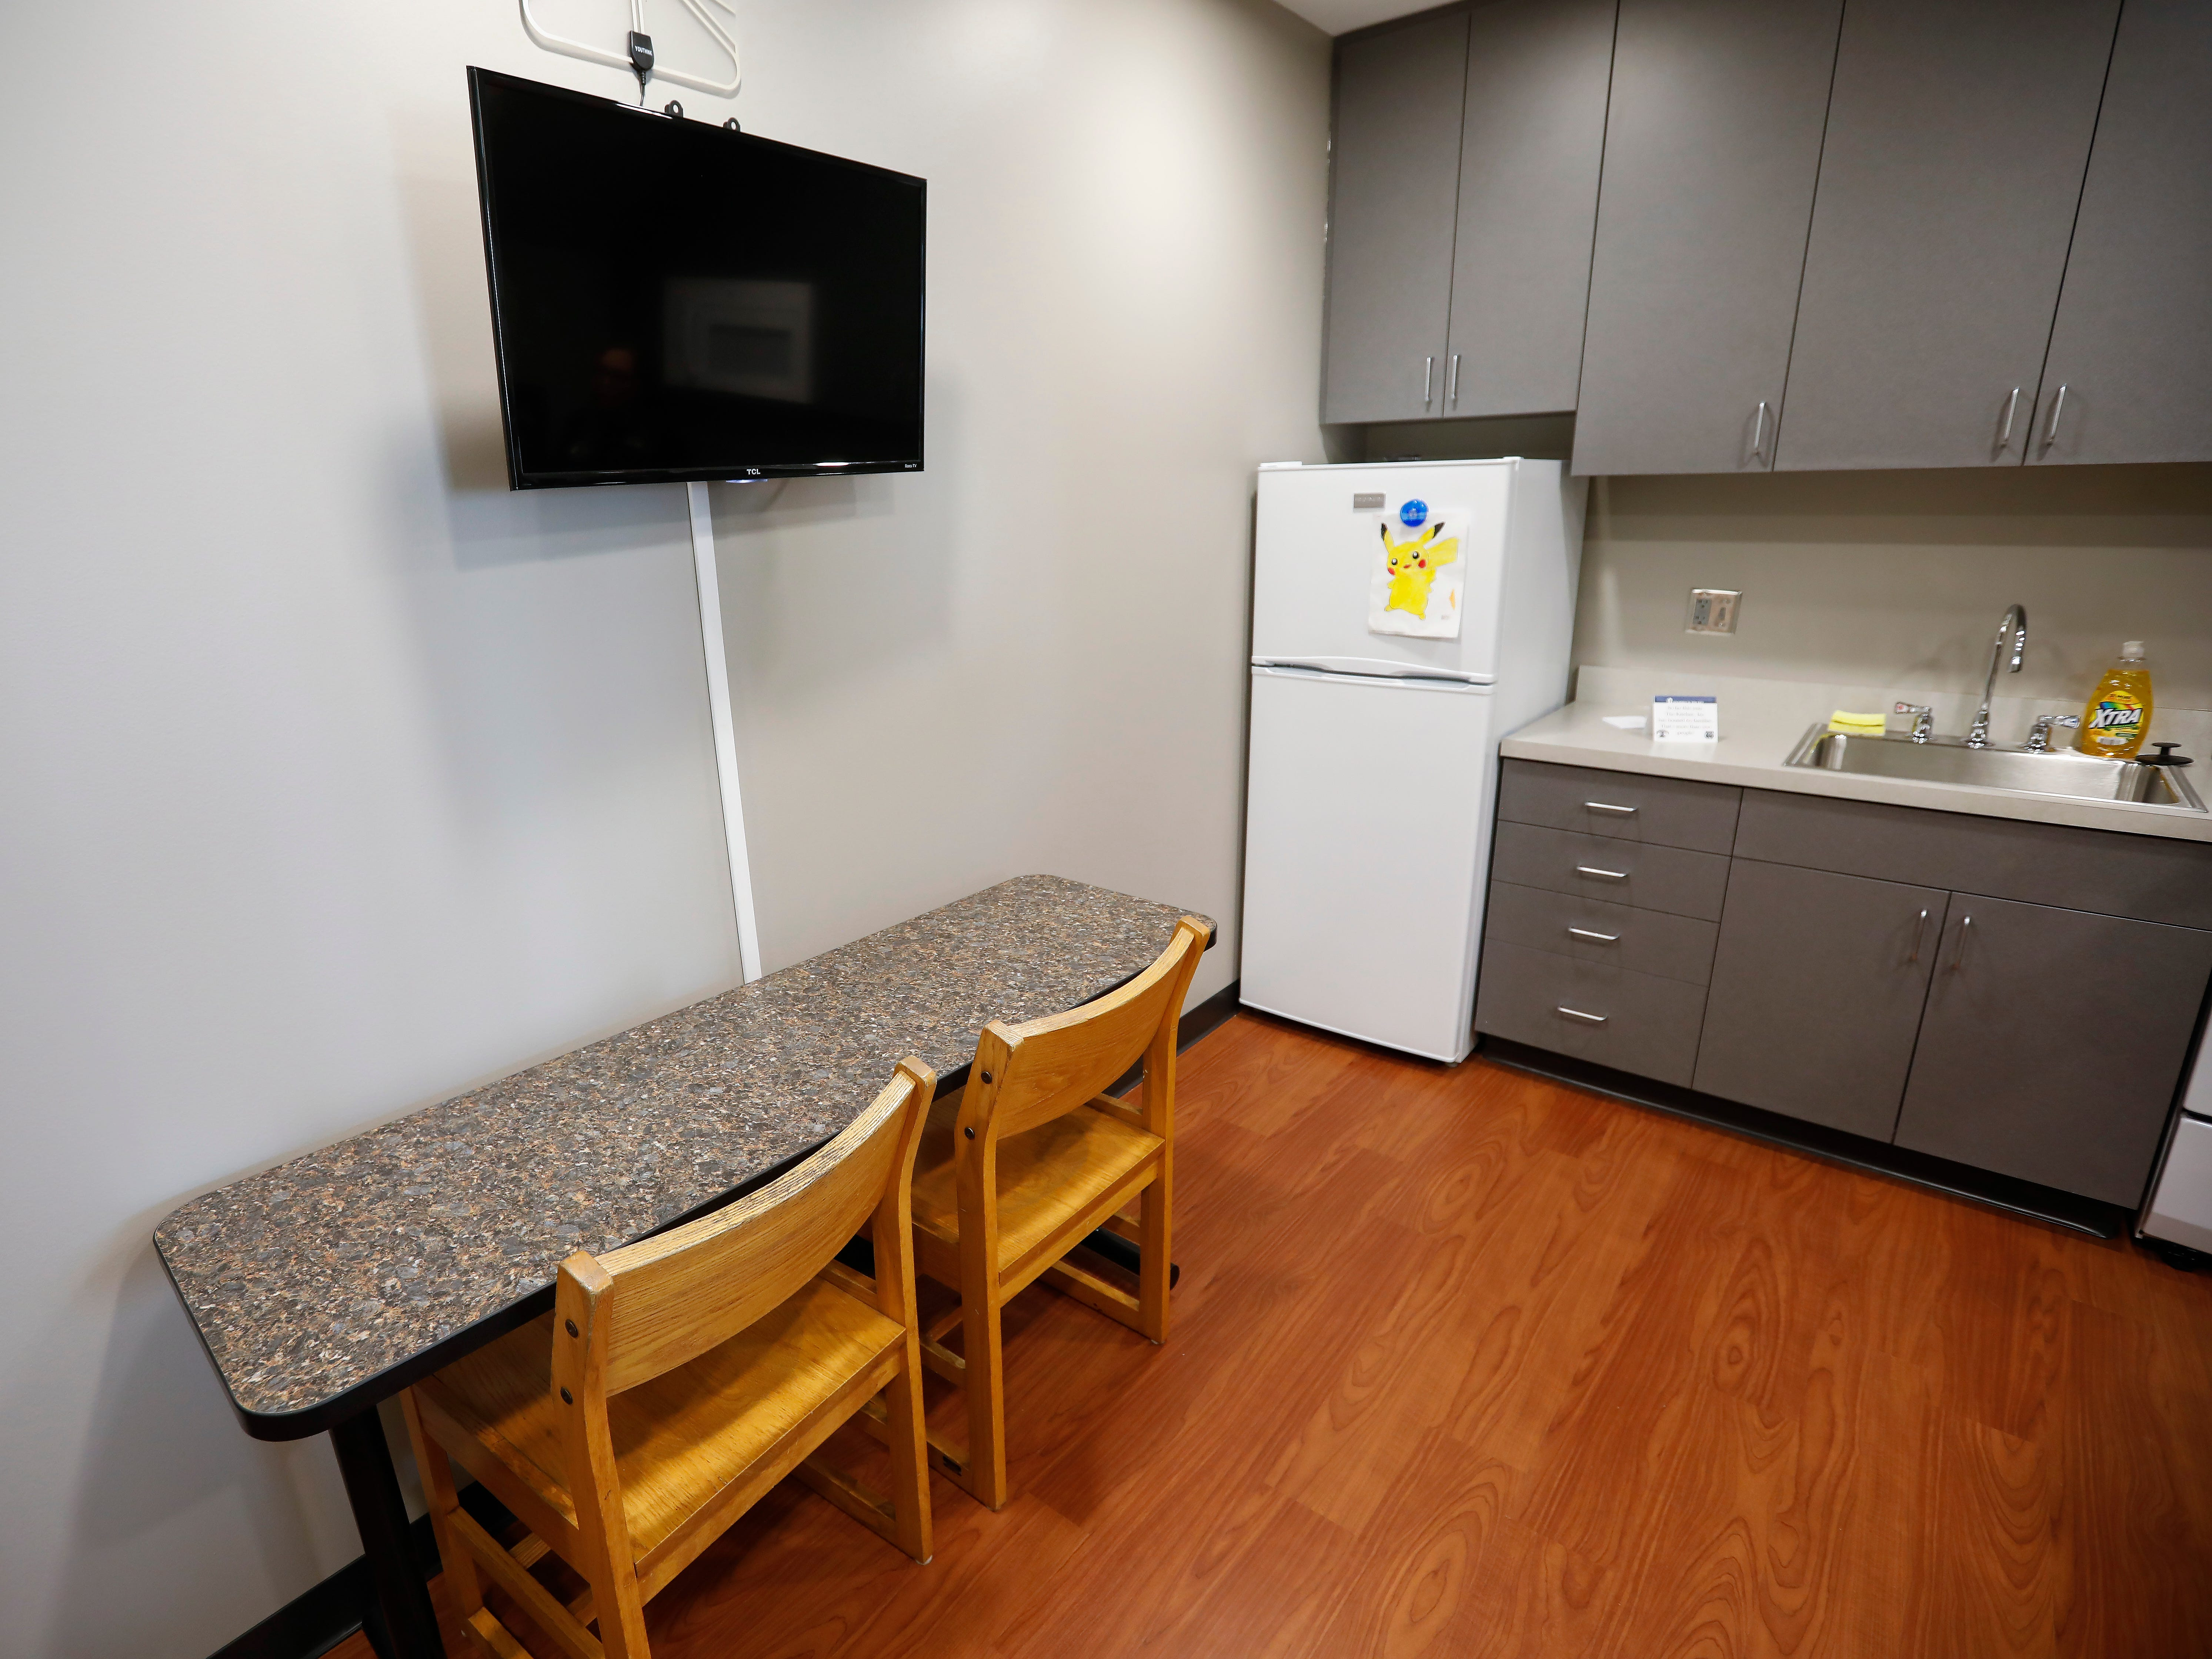 The television and kitchen area inside one of the apartments at The Kitchen's new Emergency Shelter located at 1855 E. Chestnut Expressway.